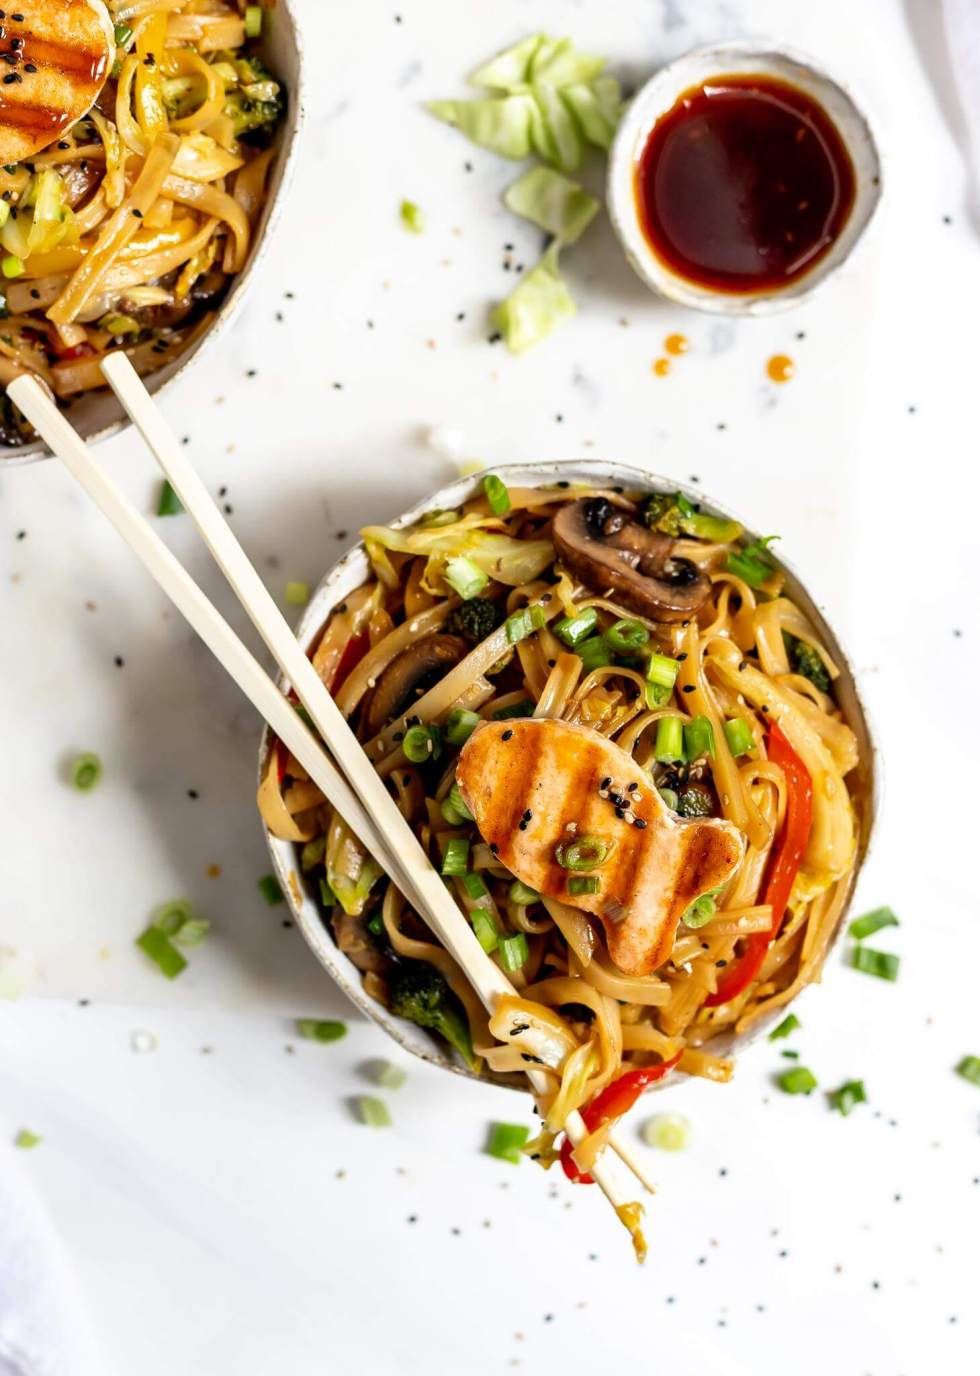 bowl of chines noodles with chopsticks on top and a small bowl of sauce on the side